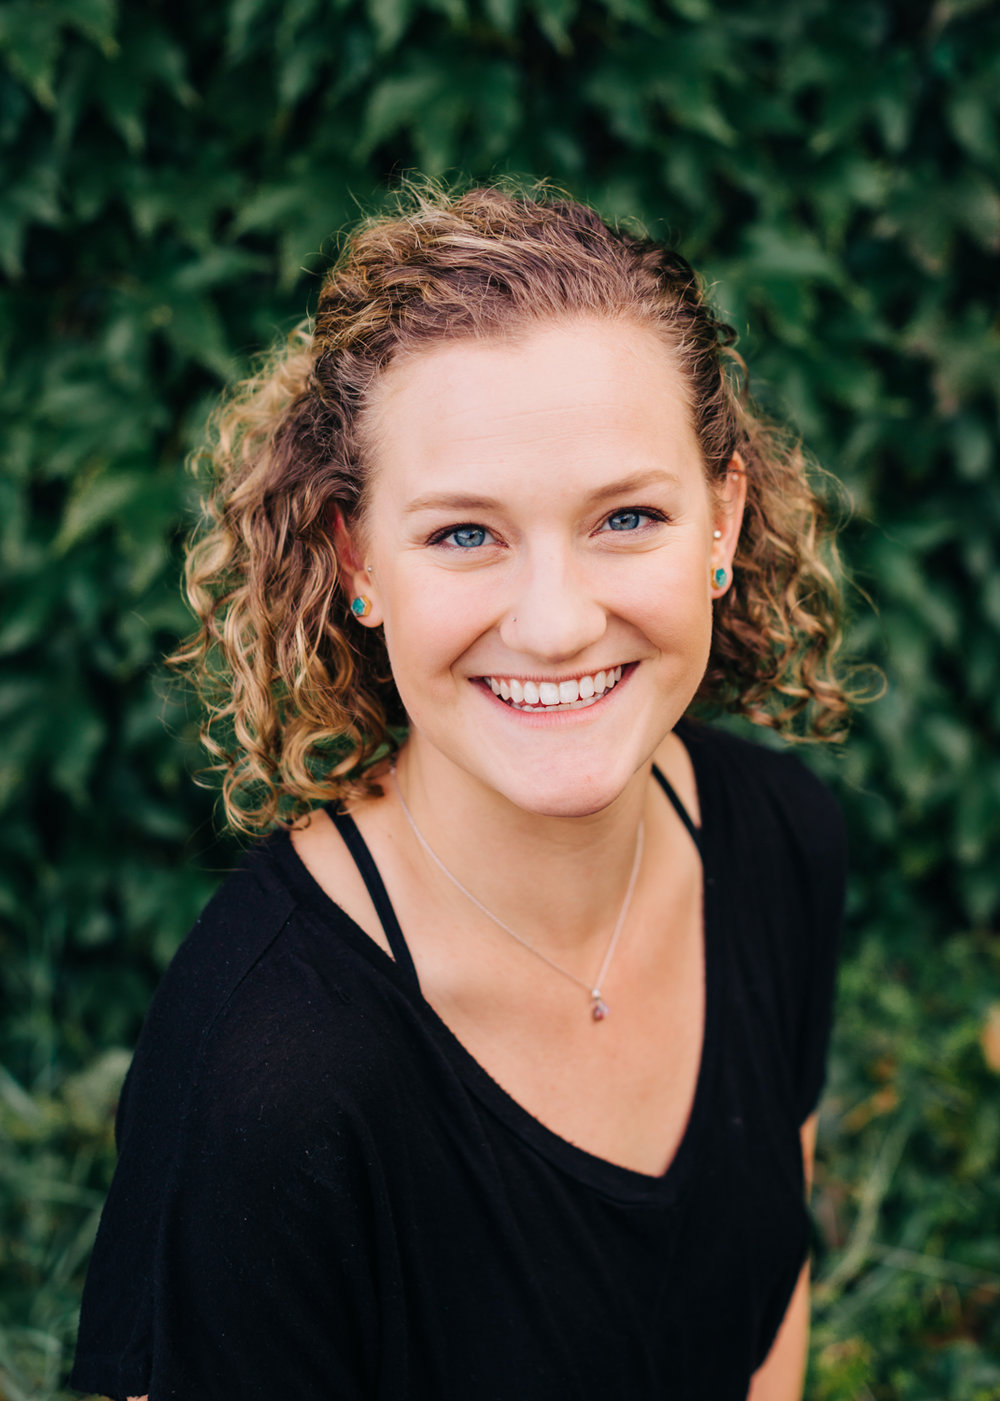 Torie Weprin, LMT torie@gorgeplayworks.com Torie Weprin graduated from Western State Colorado University in Gunnison, Colorado with a degree in Exercise and Sports Science. She then attended MountainHeart School of Bodywork in Crested Butte, Colorado where she received training in infant massage and became a certified massage therapist in 2014. She is now a licensed massage therapist in Oregon and has been practicing at Holistic Massage of Hood River for over a year now. As a former high school and NCAA top athlete, she is passionate about inspiring an interest in health and wellness in all ages. Torie will work with the PTs and OTs at Play Works to help include massage therapy into the personalized treatment plan for your child. She is also very excited to work with parents to help coach them through providing massage for their infants to promote healthy growth and development.